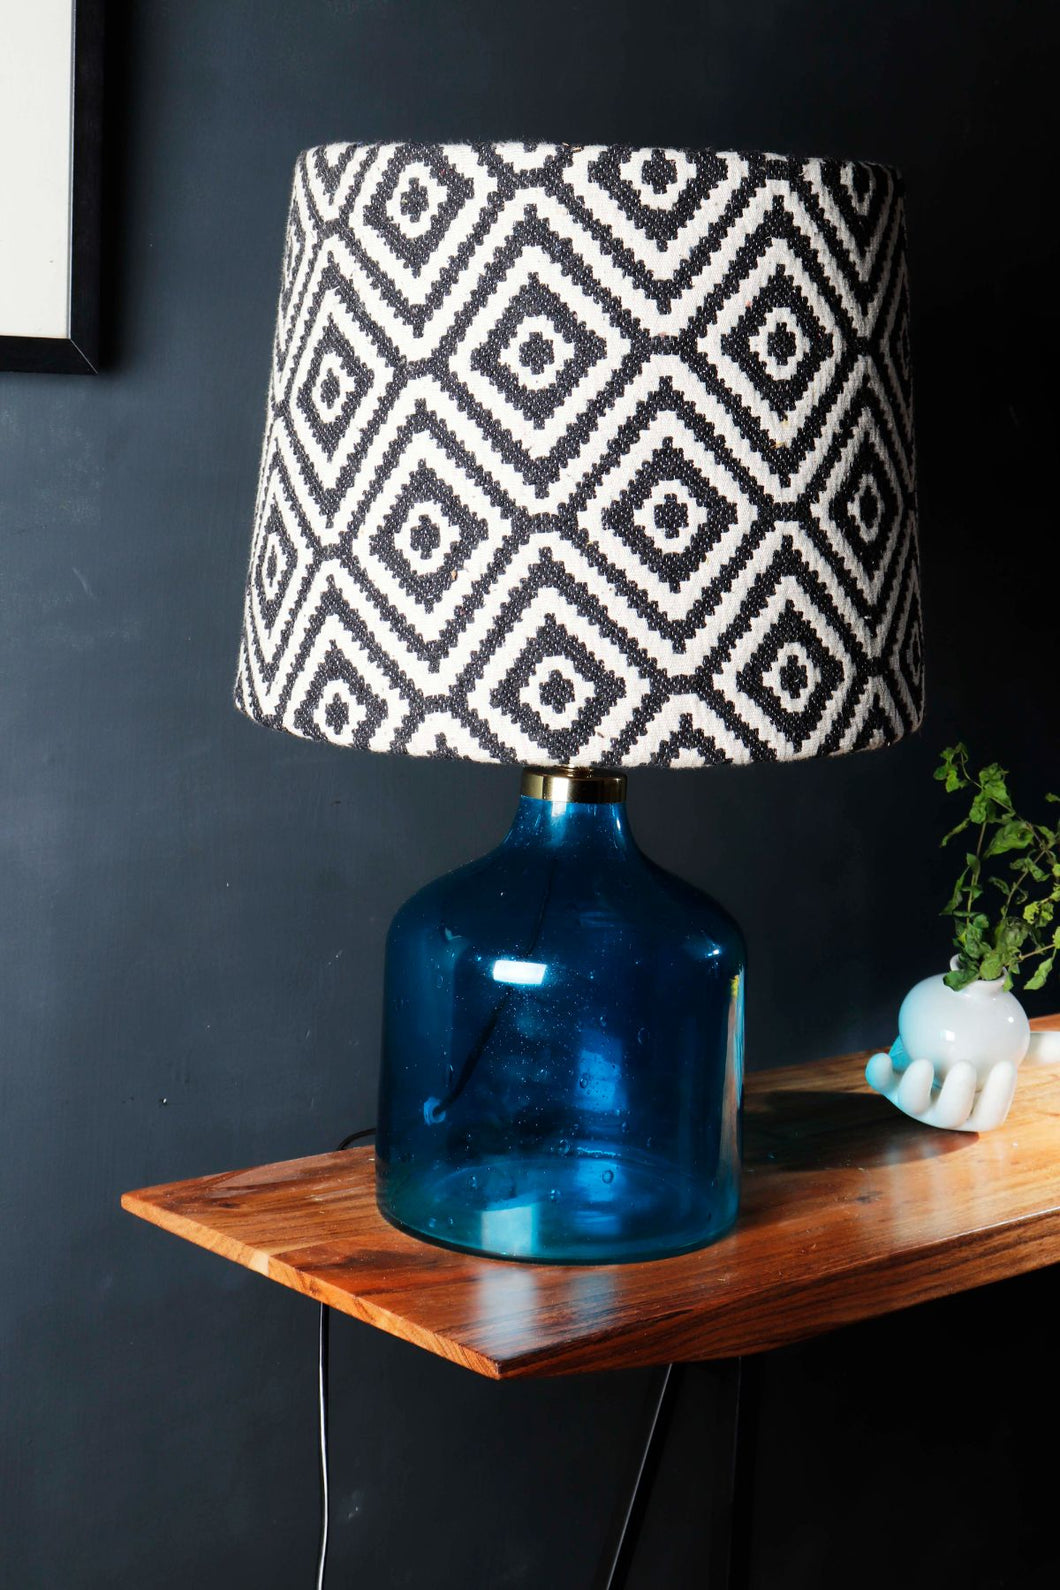 Aqua Table Lamp with Black Printed Designer Lampshade